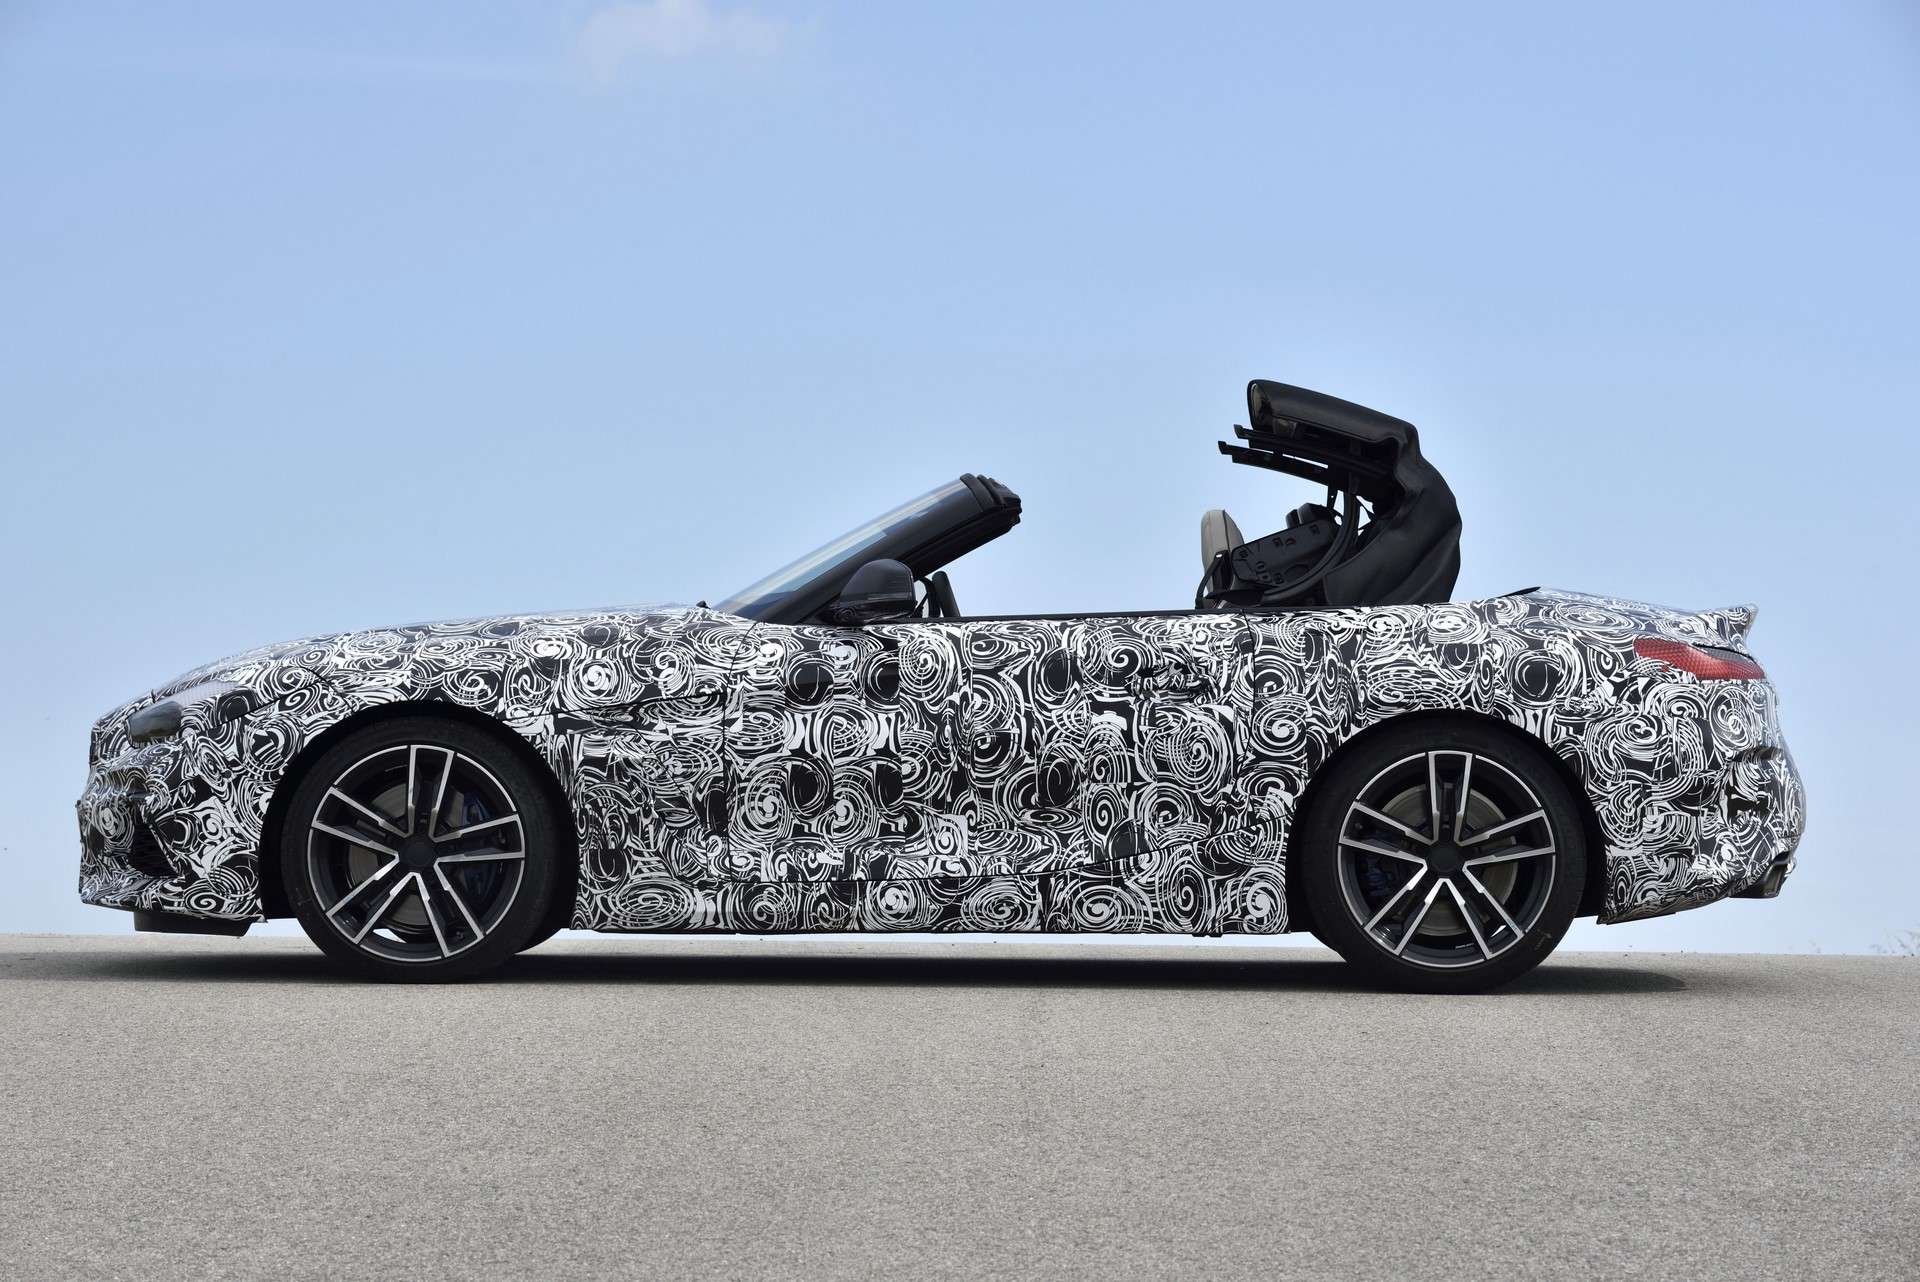 BMW Z4 M40i 2019 official spy photos (37)